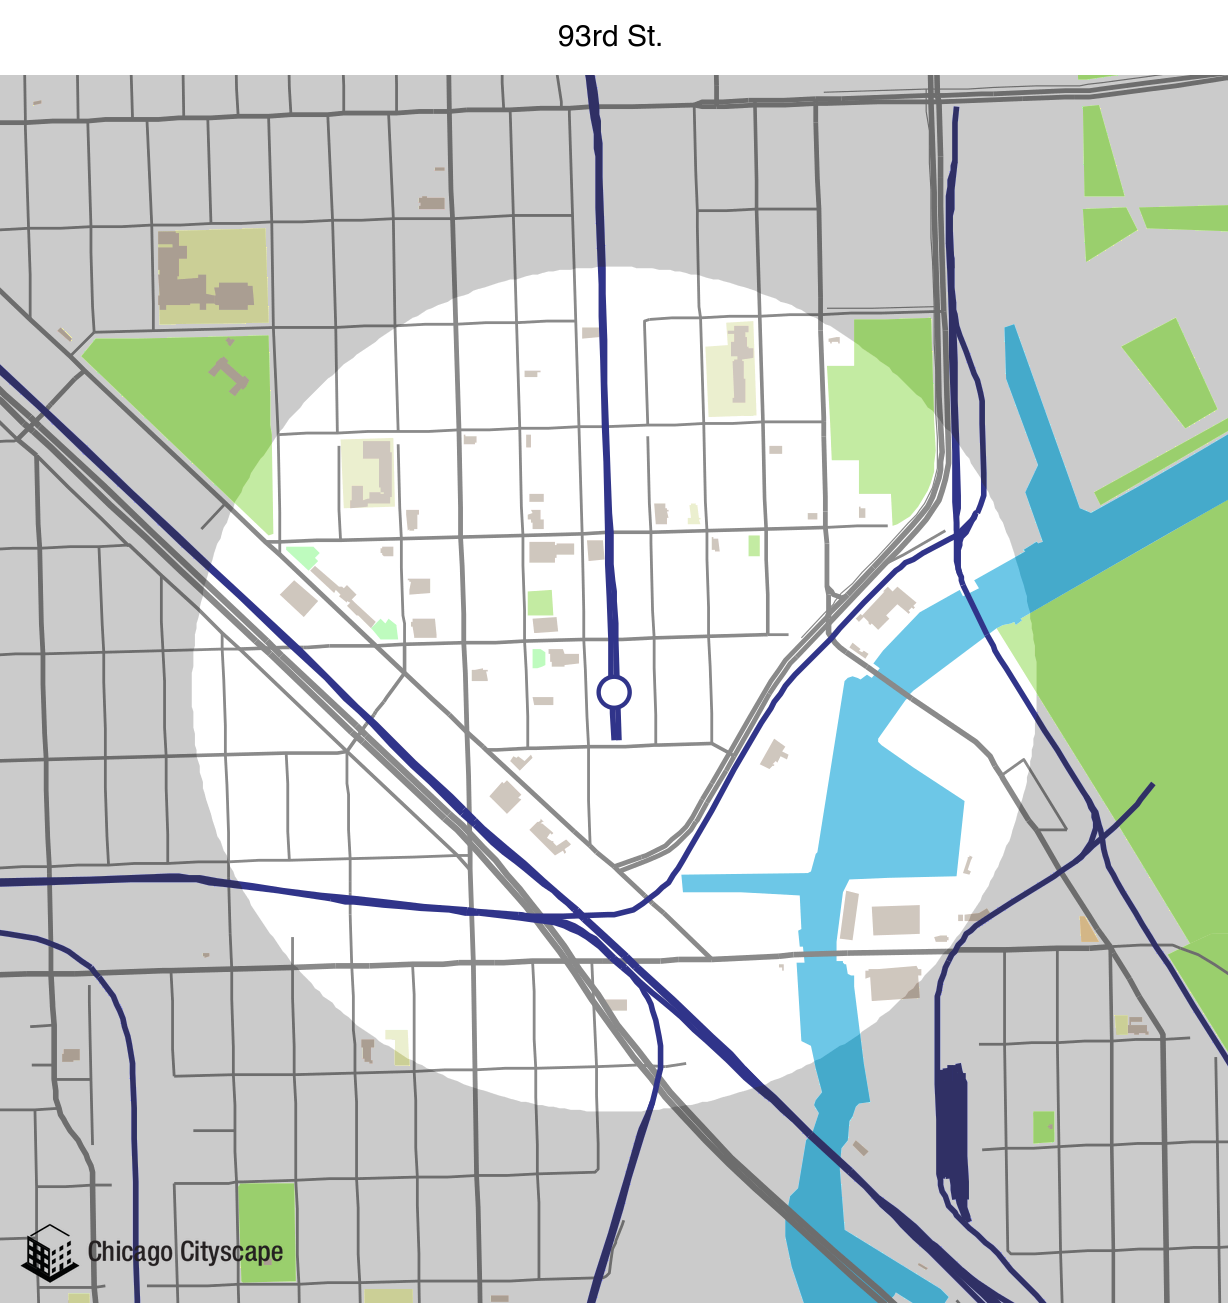 Map of building projects properties and businesses near the 93rd